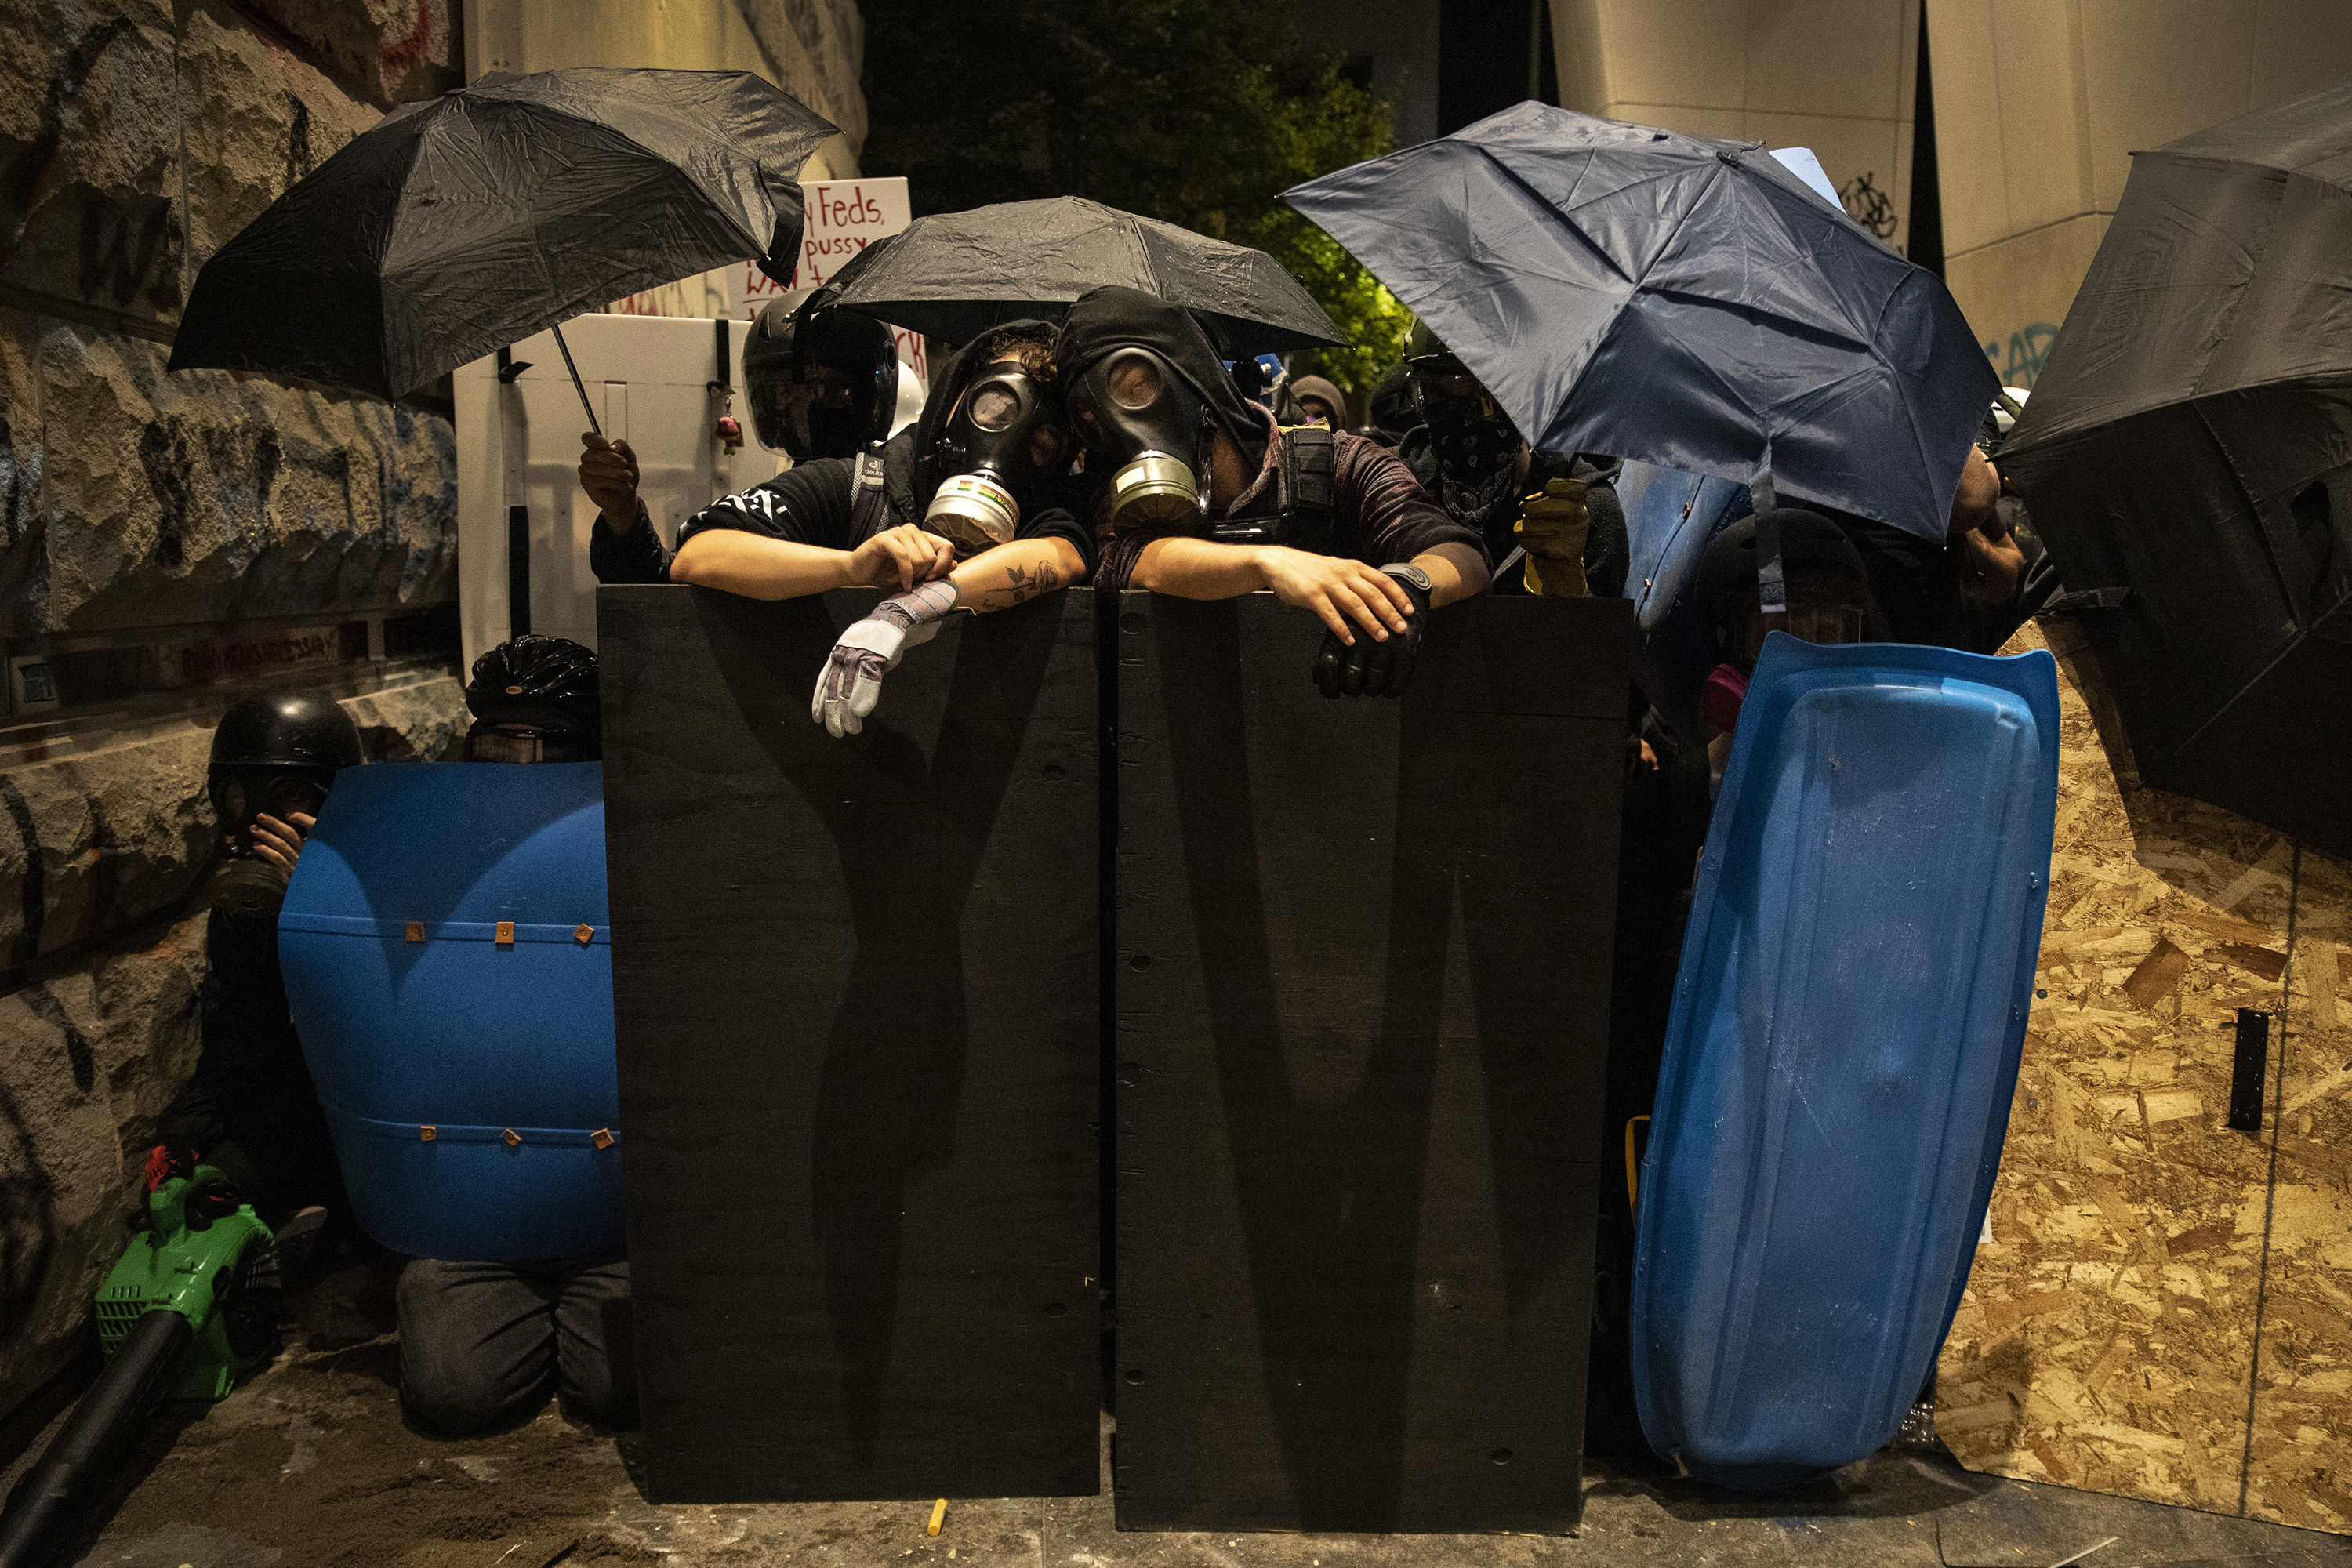 Protesters with gas masks rest against a homemade barrier during a demonstration in Portland